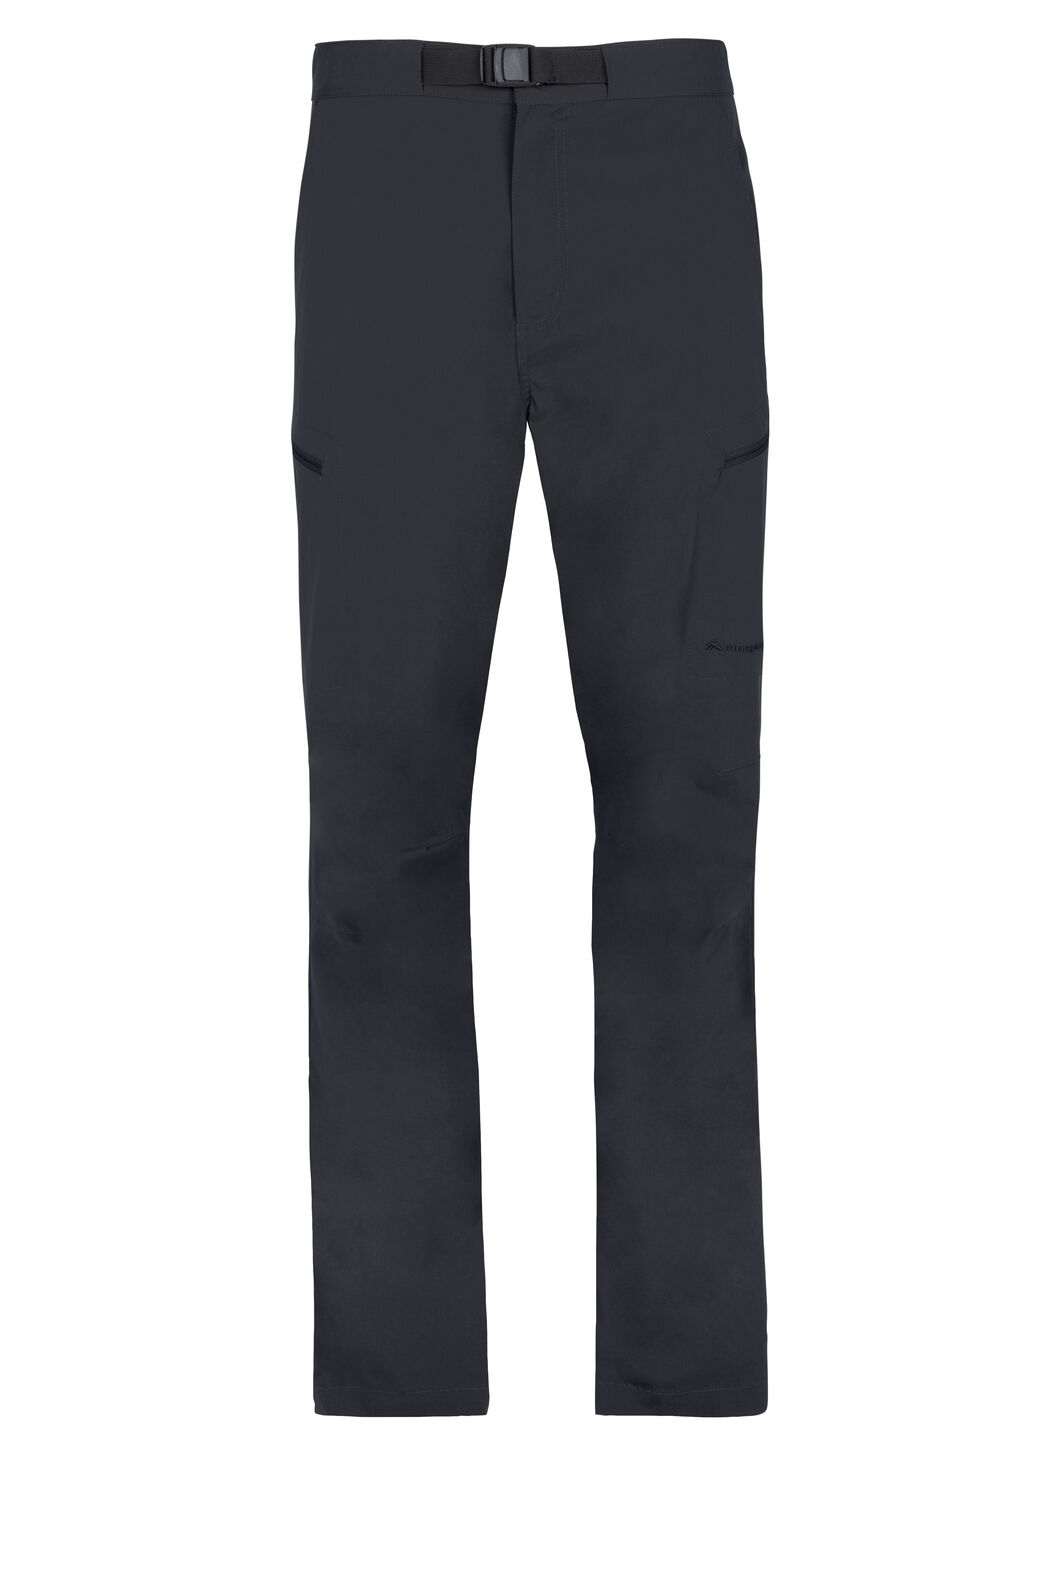 Macpac Drift Pants — Men's, Black, hi-res